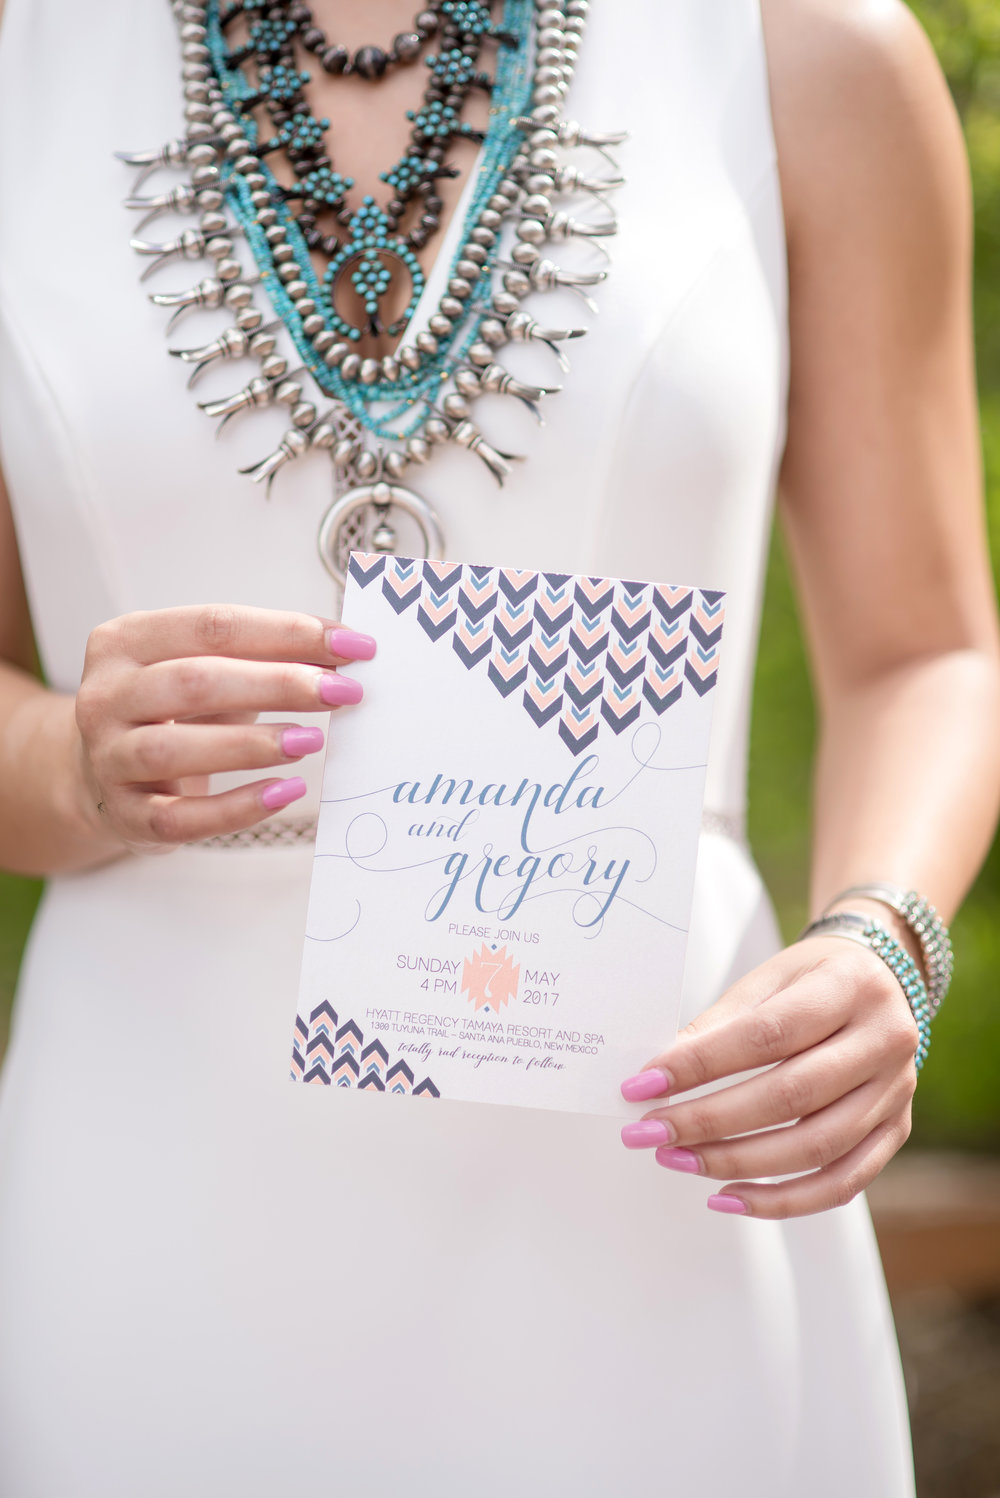 Our lovely model holding one of the southwest chic invitations designed for the shoot - I love all the #bohovibes! That squash blossom necklace is sooooo dreamy.